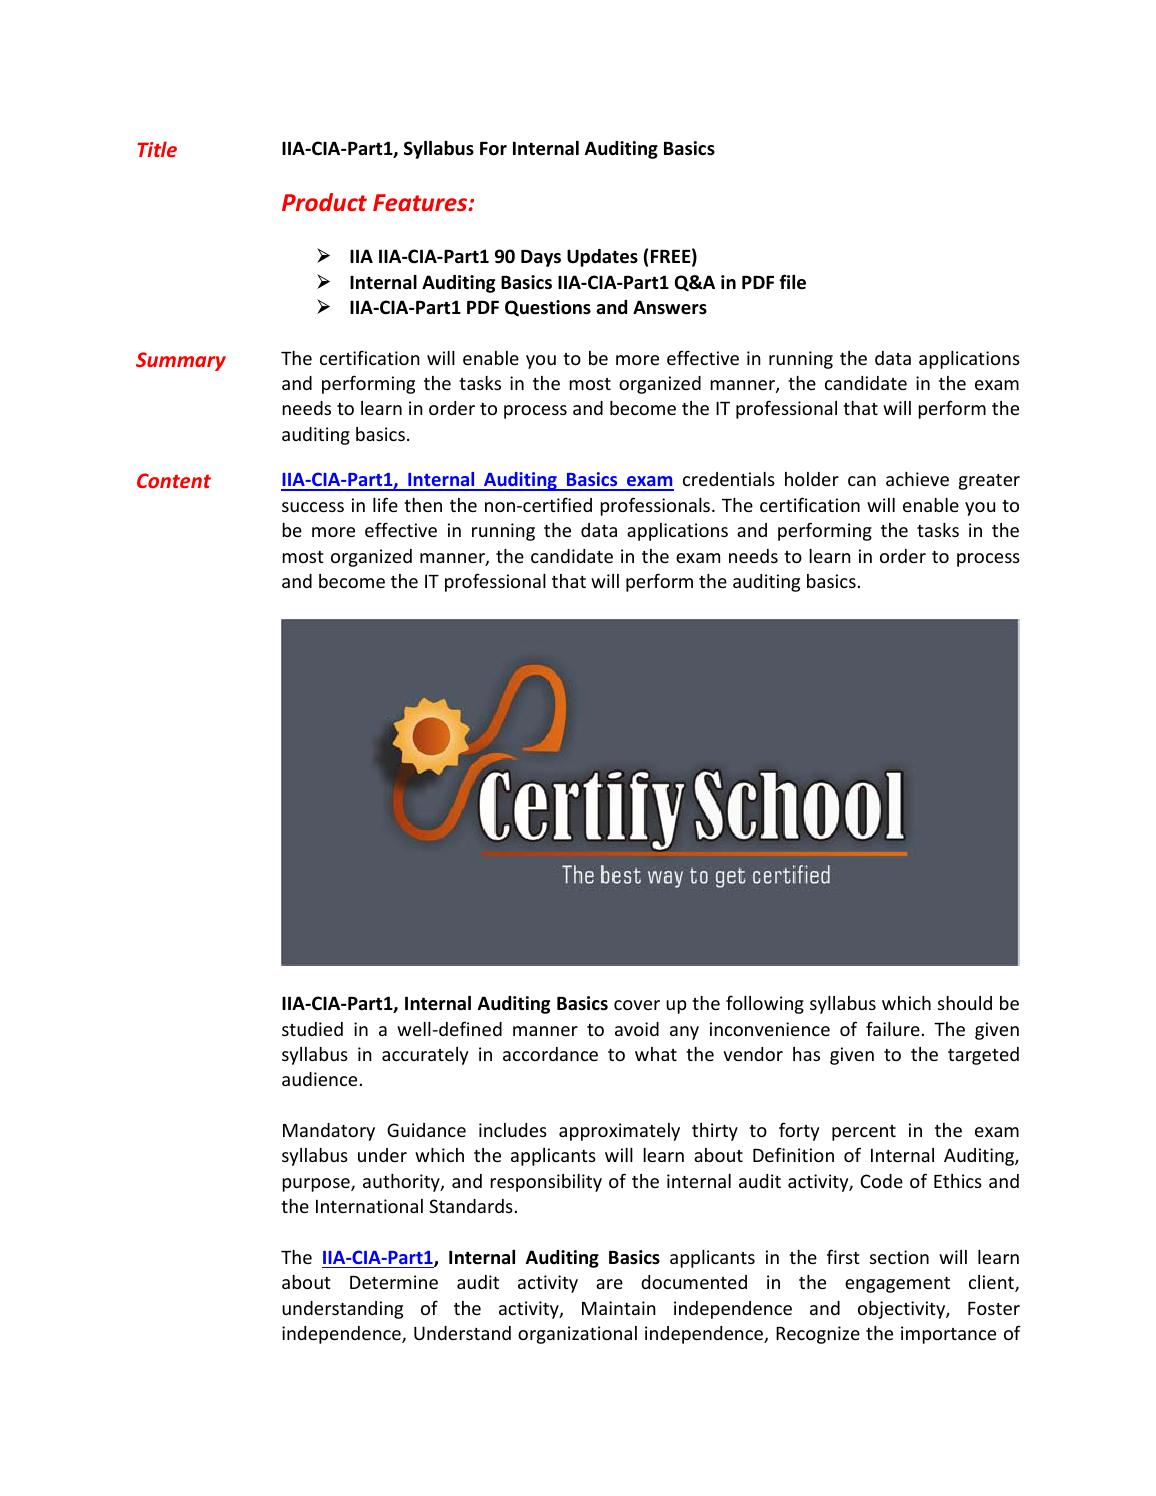 IIA-CIA-Part1 Exam Questions - Pass in First Attempt by